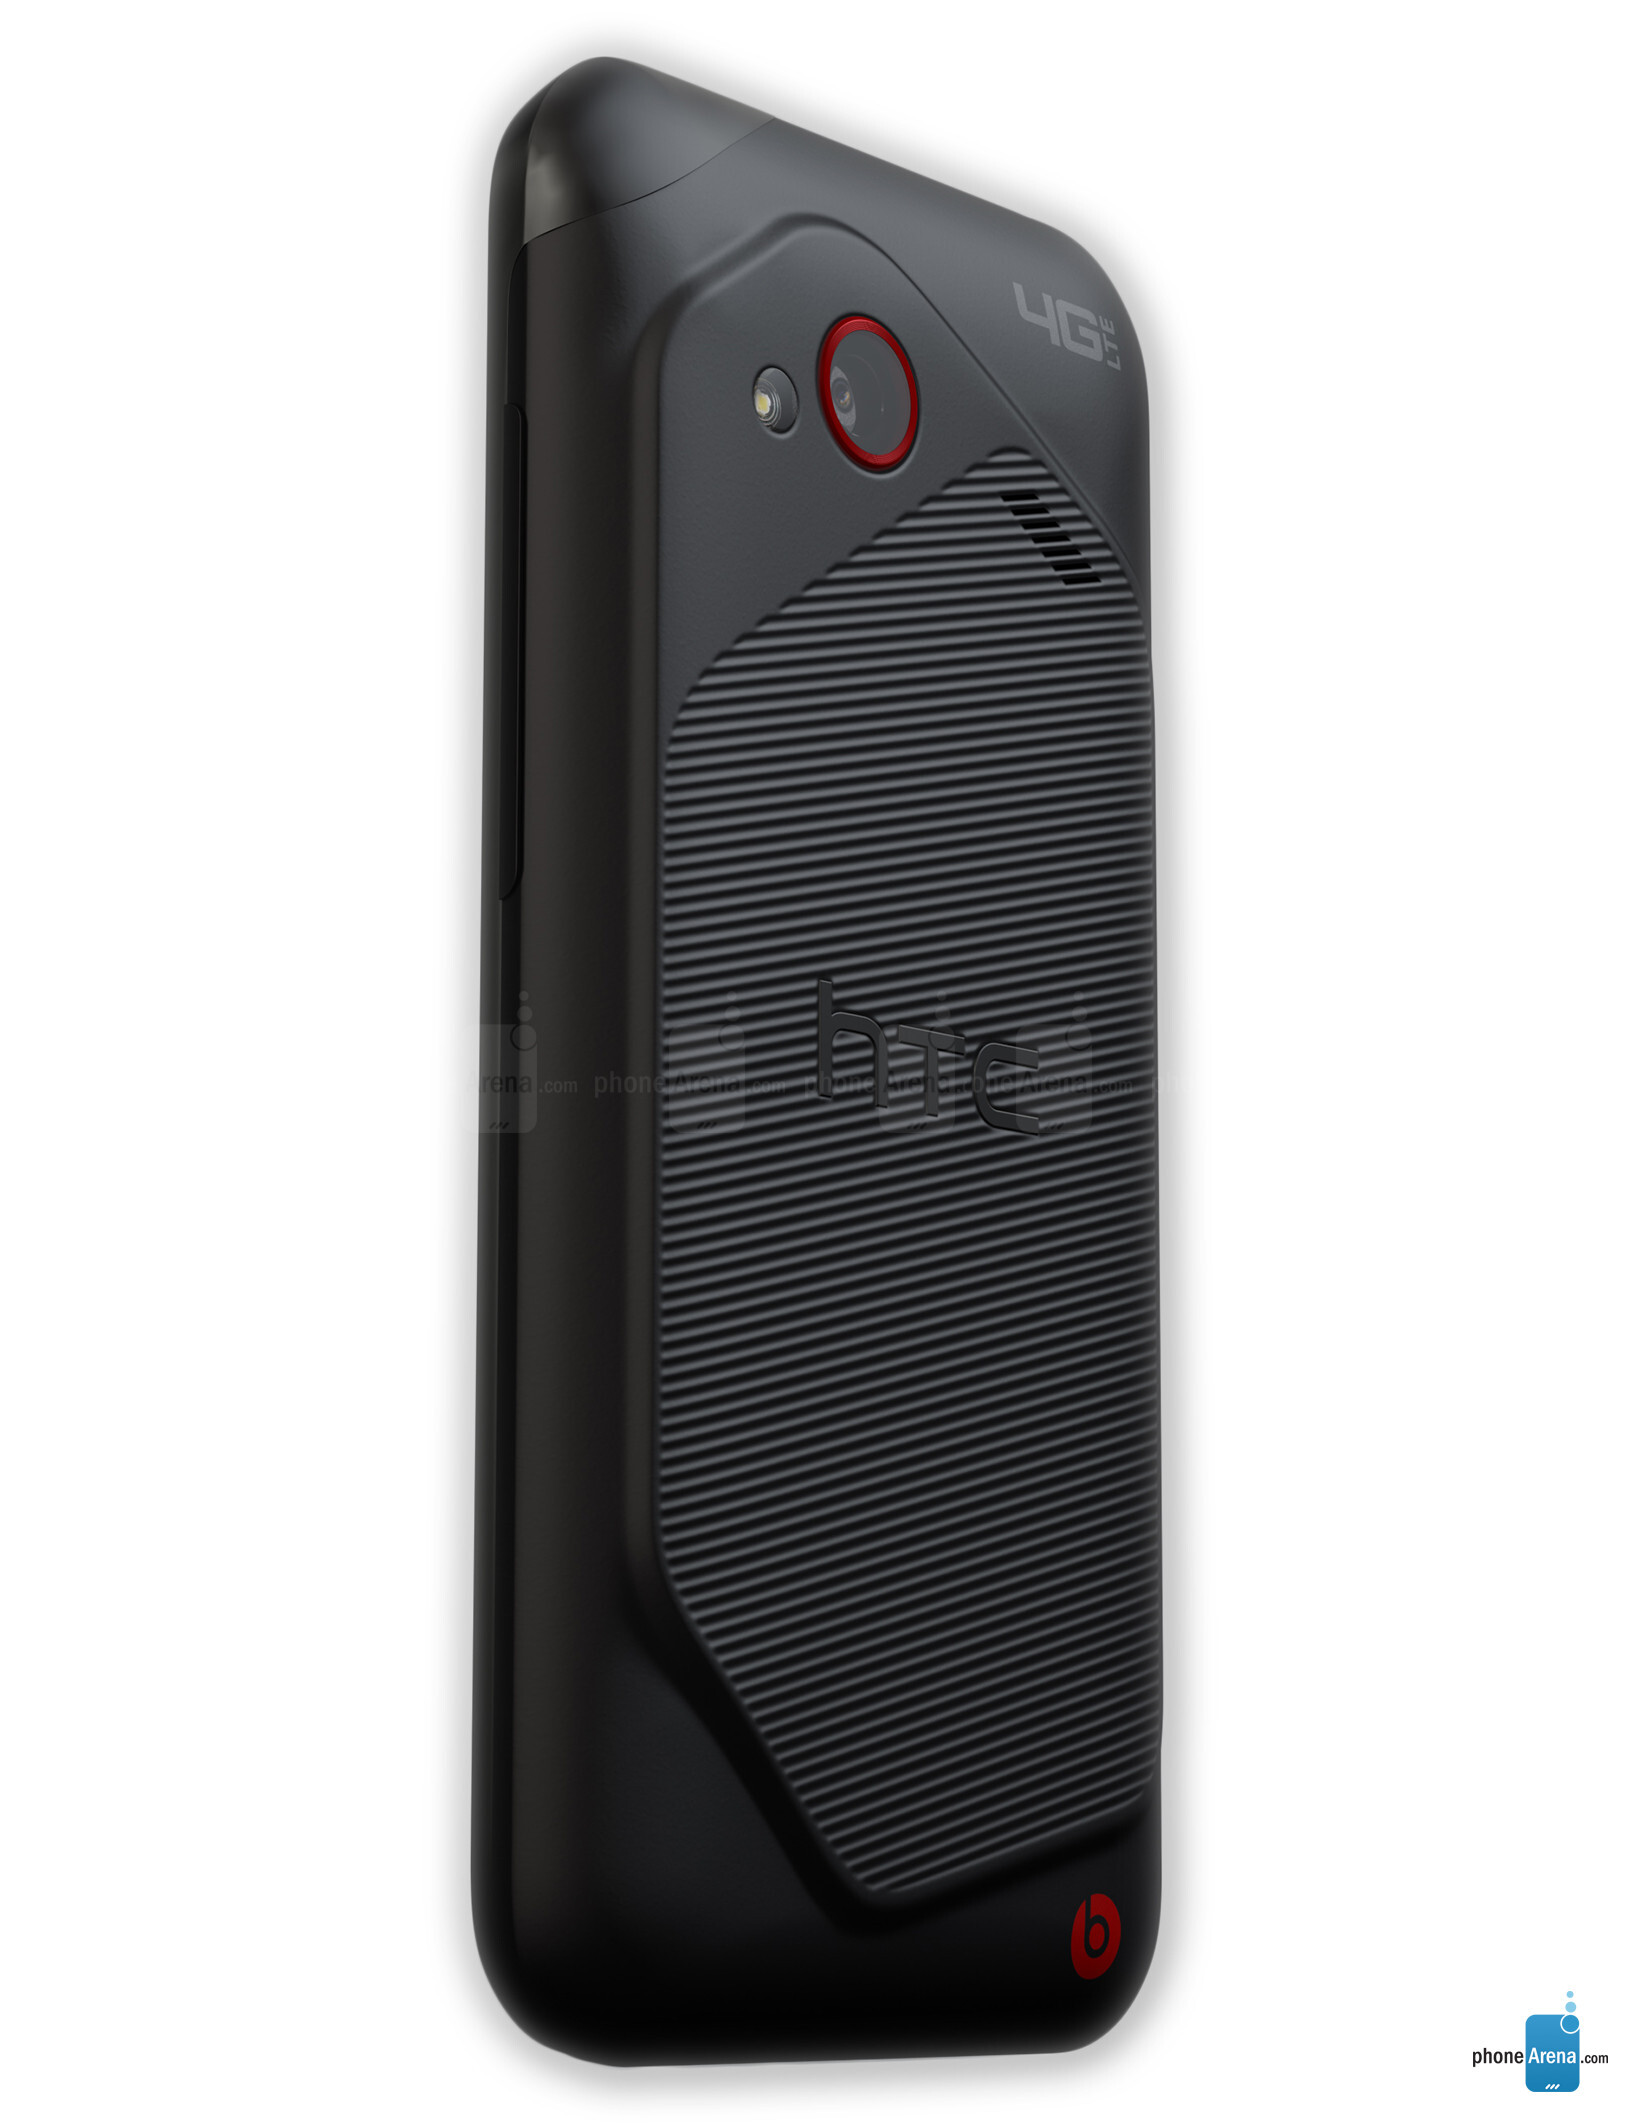 HTC DROID Incredible 4G LTE specs